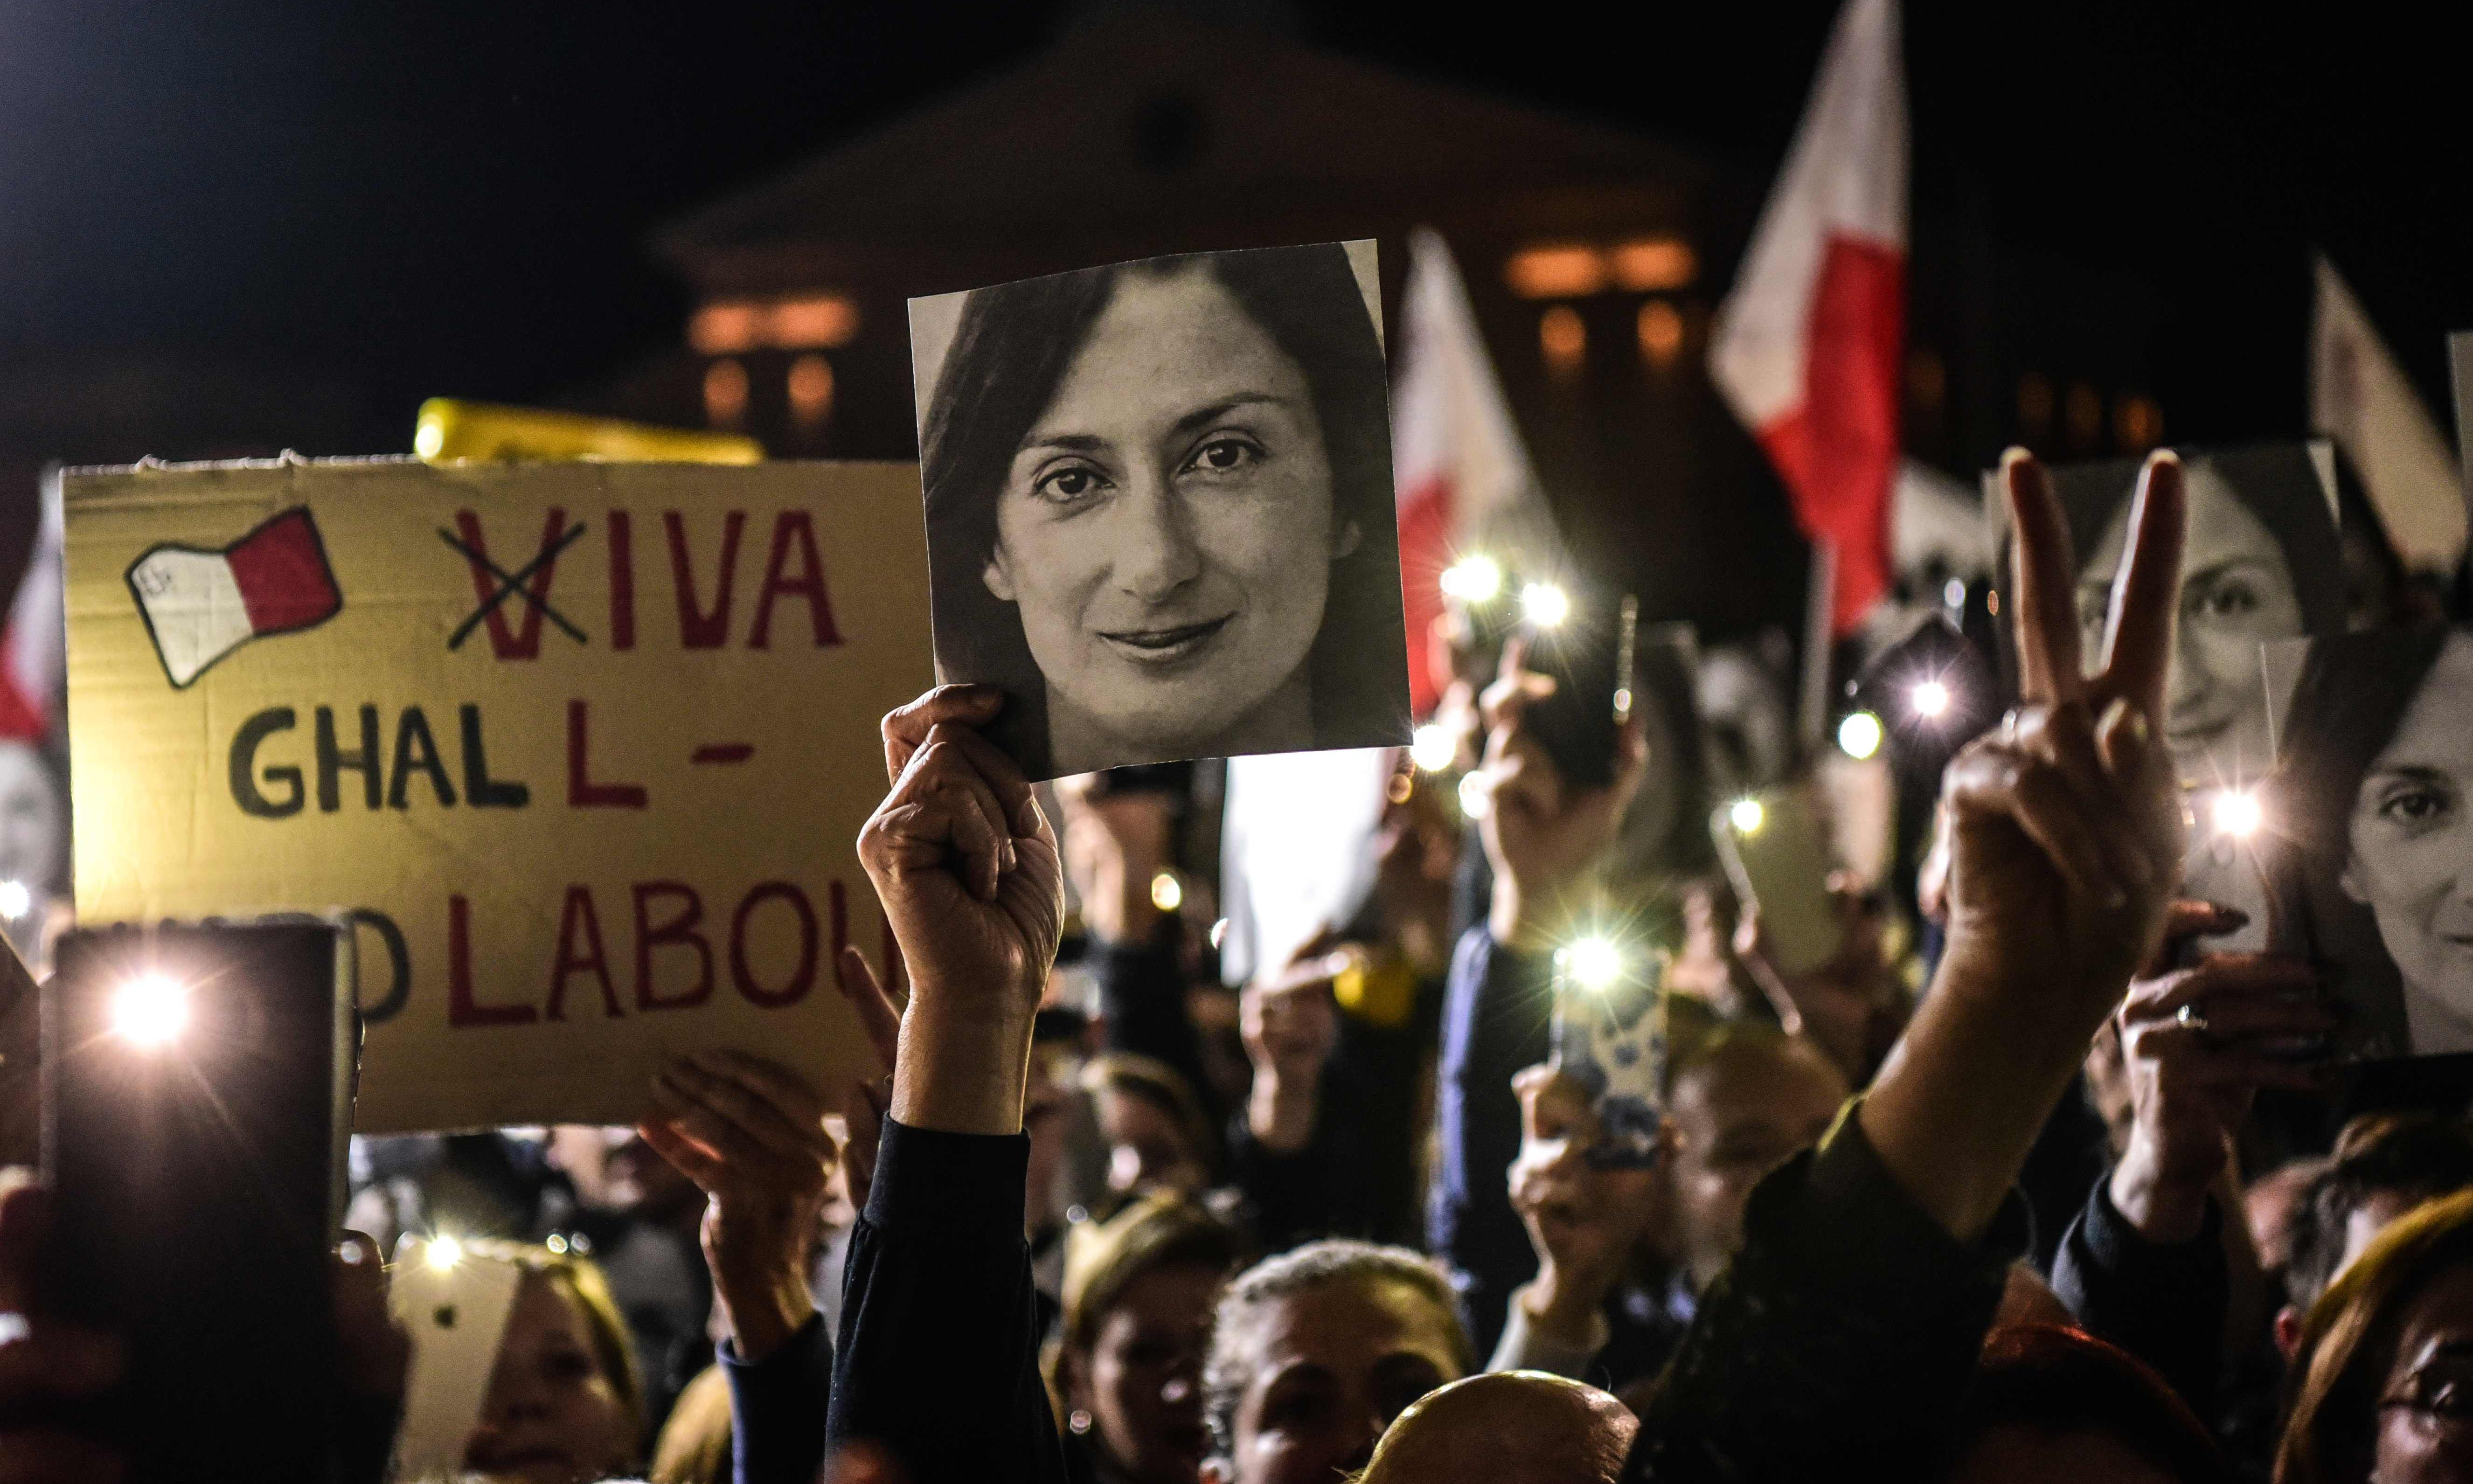 How a dog called Peter sparked Malta's political crisis